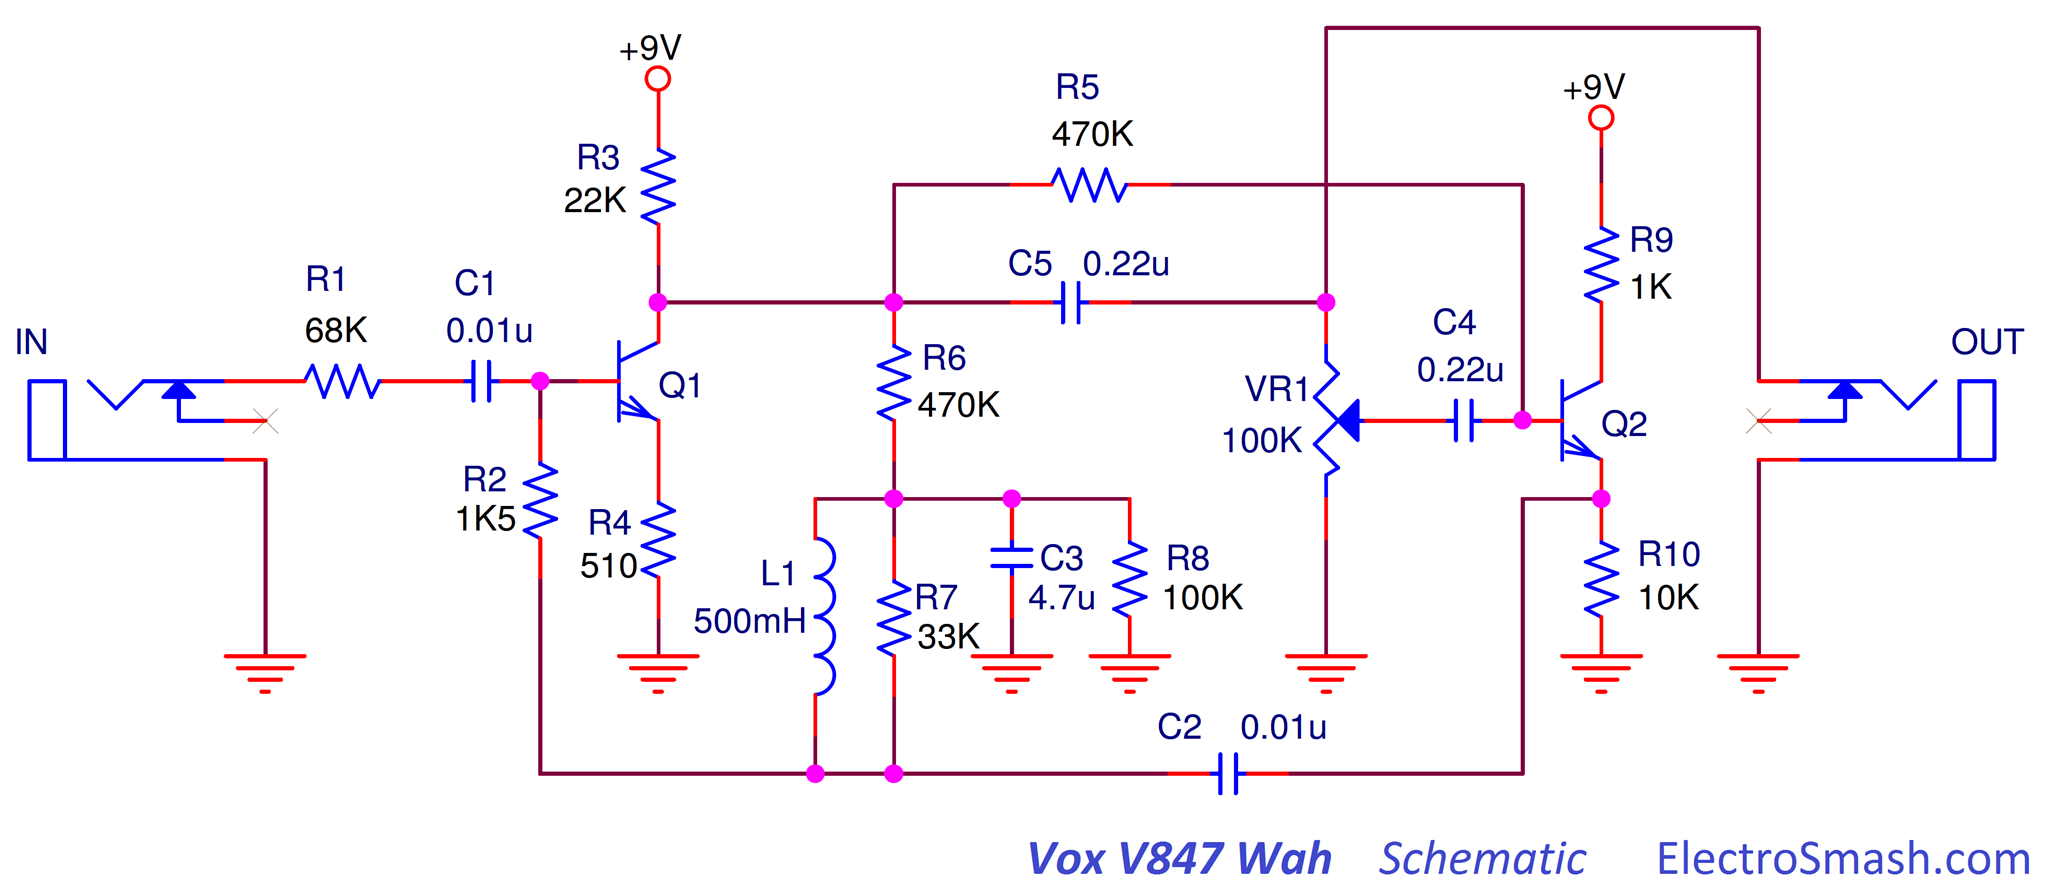 ElectroSmash - Selected Schematics on dunlop wah schematic, fulltone wah schematic, vox ac15cc1 schematic, fixed wah pedal schematic, vox 847 wah mods, vox tone bender pedal schematic, vox v846 wah mod, vox ac30 schematic, vox 847 schematic, hiwatt wah schematic, cry baby vox schematic, vox pathfinder schematic, morley wah pedal schematic, vox tone bender reissue schematic,